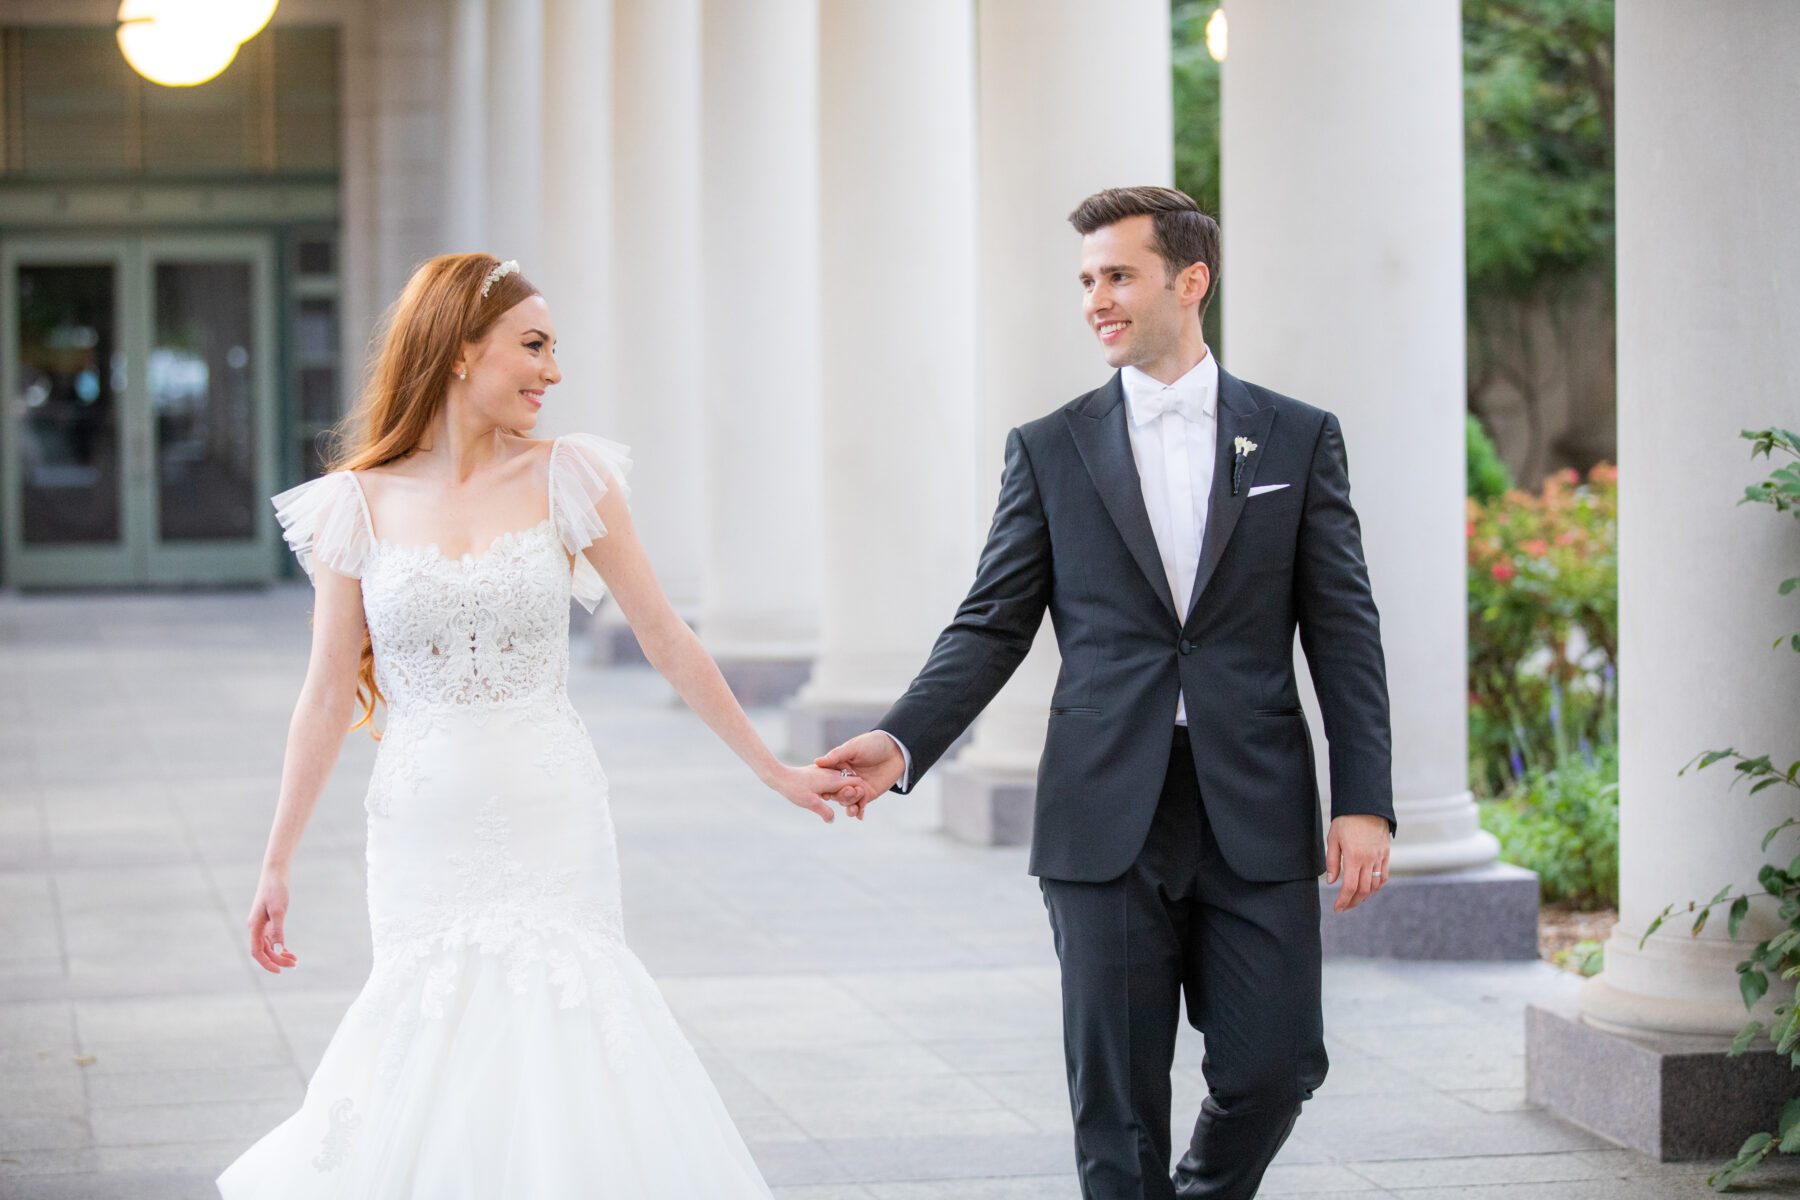 Matt Andrews Photography: Floral Filled Luxurious Wedding by LMA Designs featured on Nashville Bride Guide